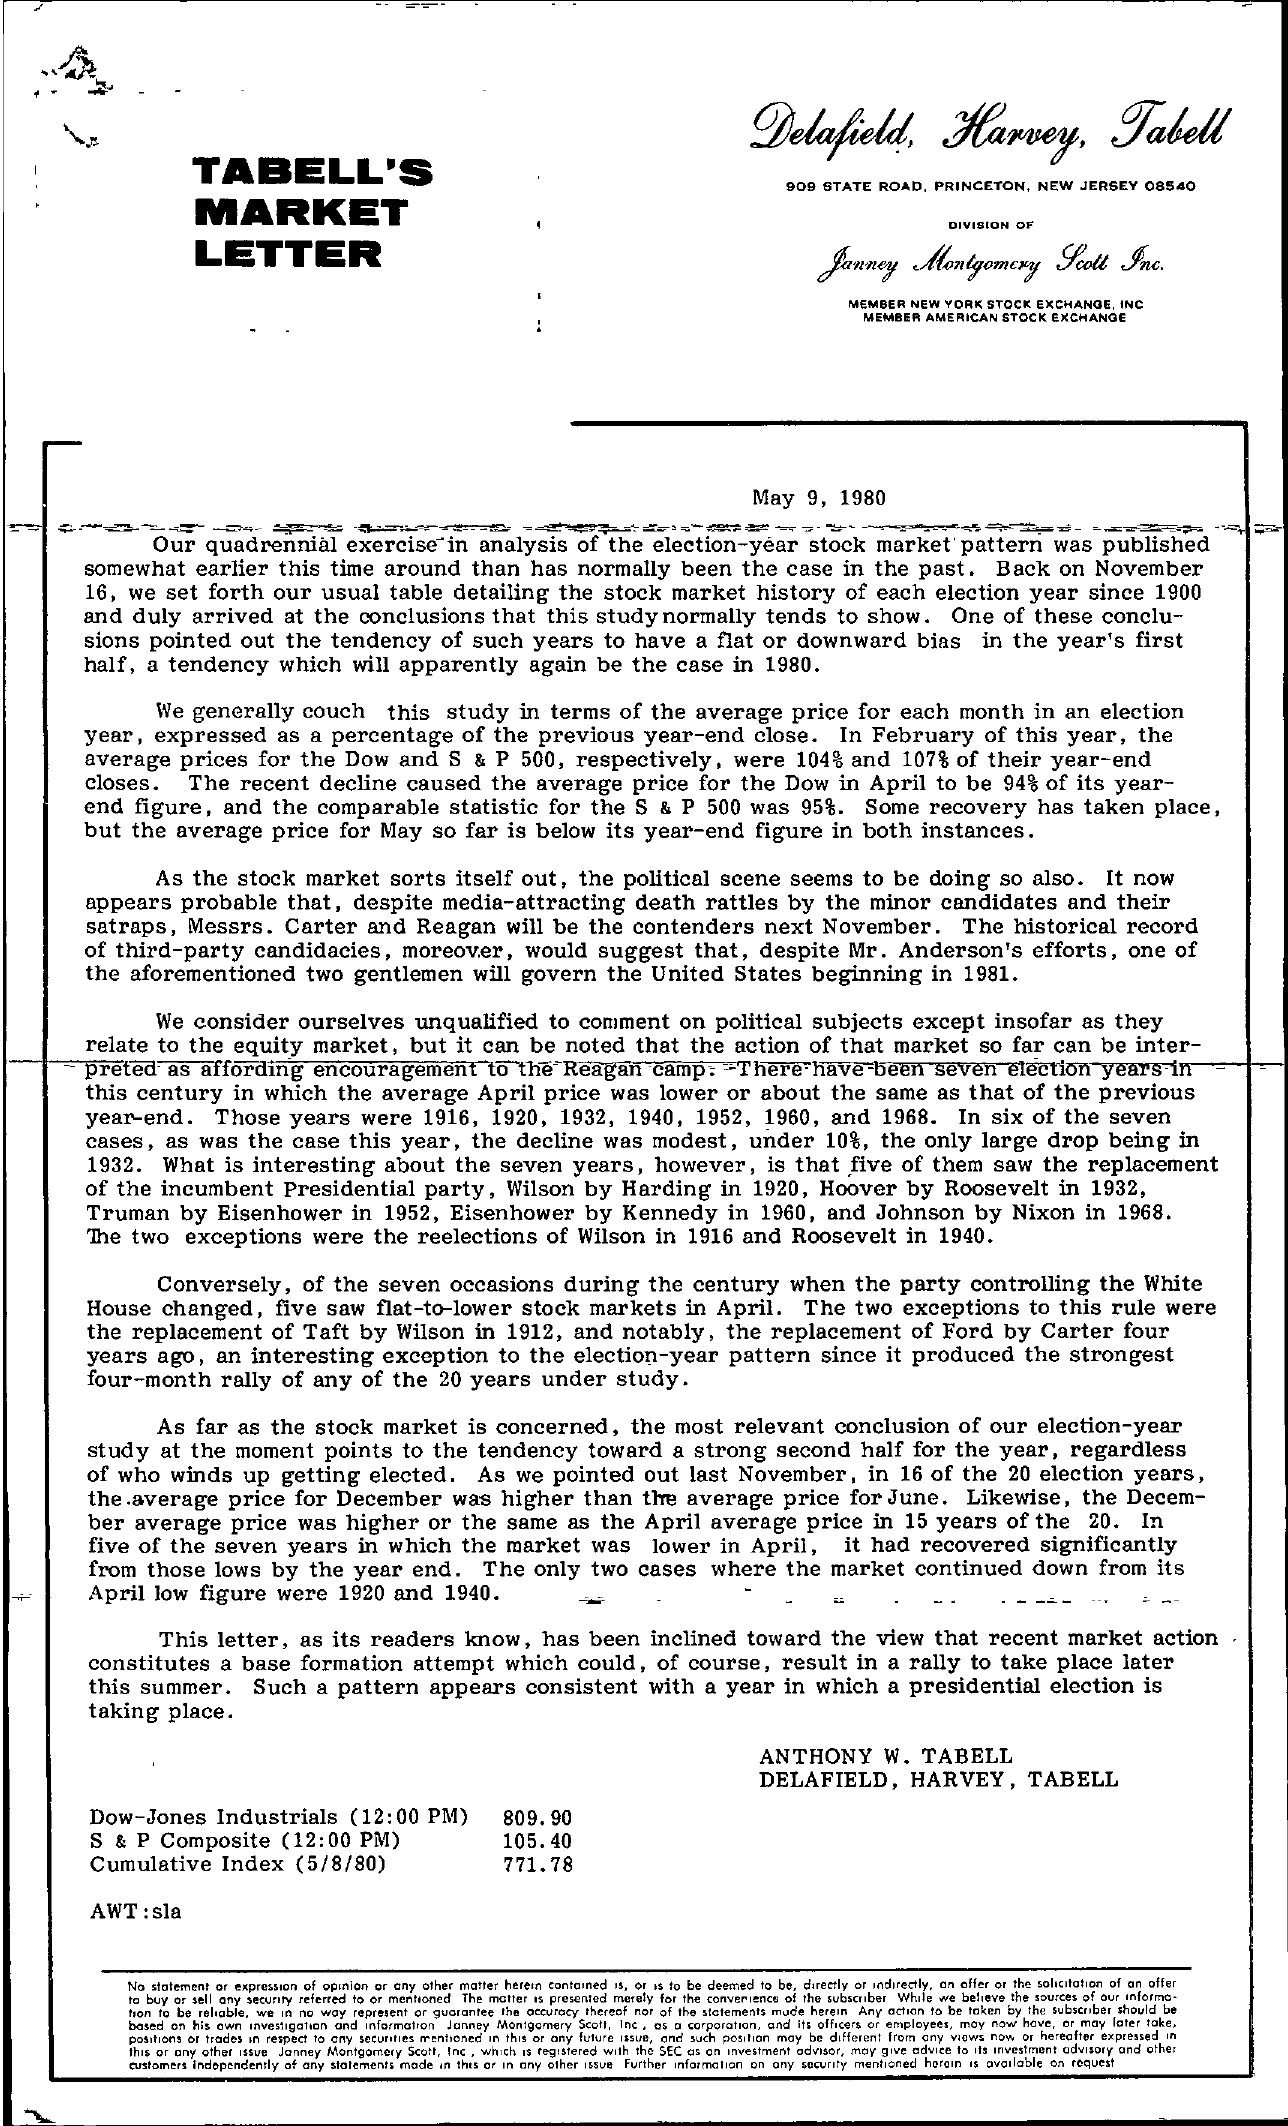 Tabell's Market Letter - May 09, 1980